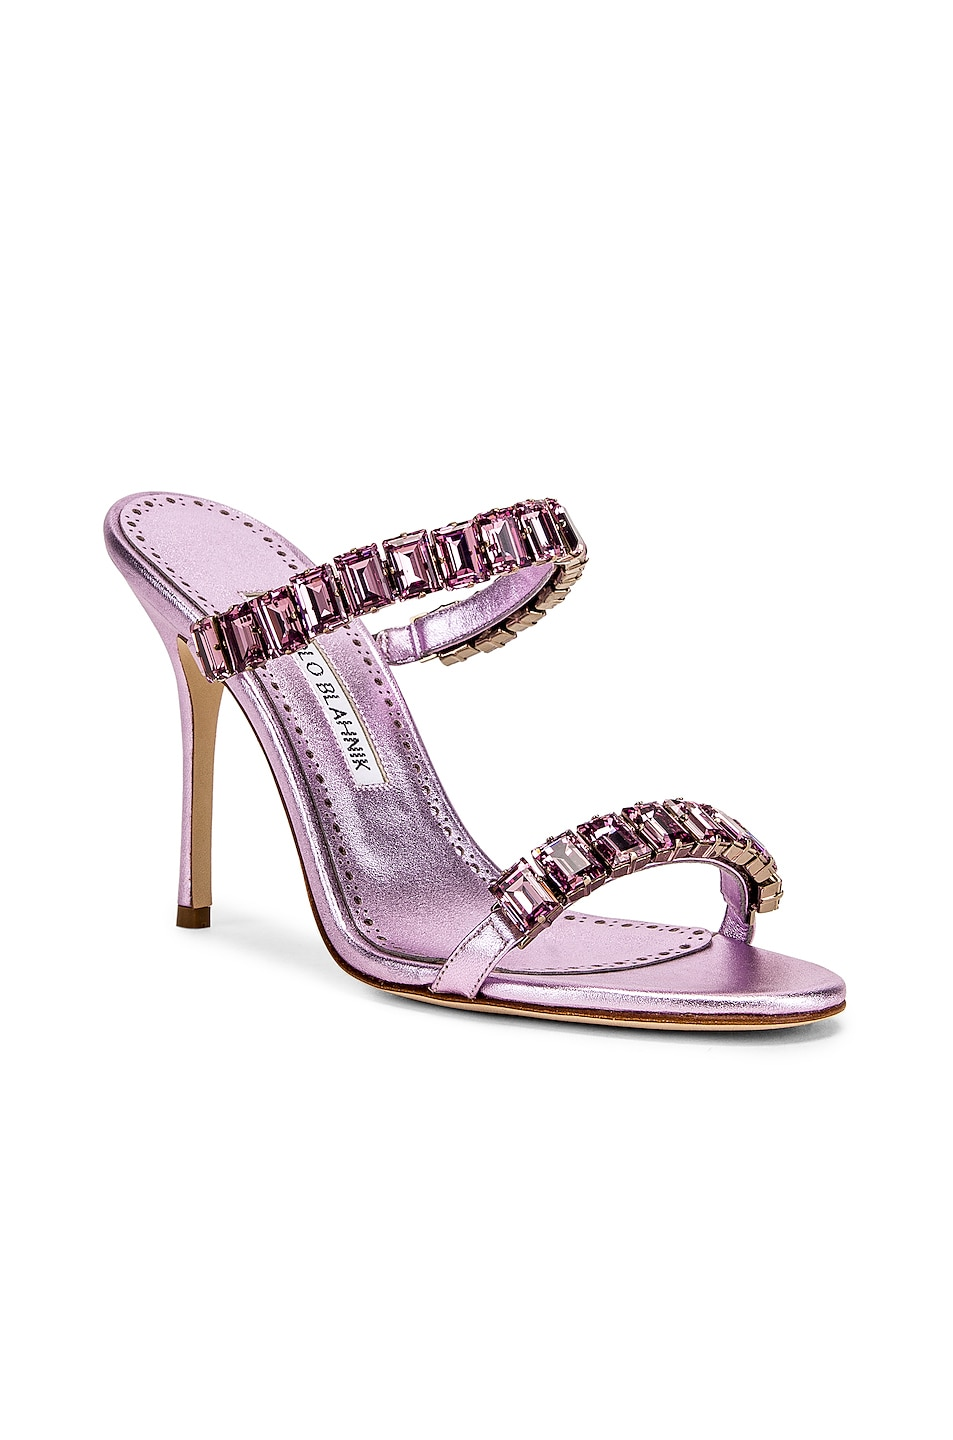 Image 2 of Manolo Blahnik for FWRD Dallitre 105 Sandal in Light Pink Nappa